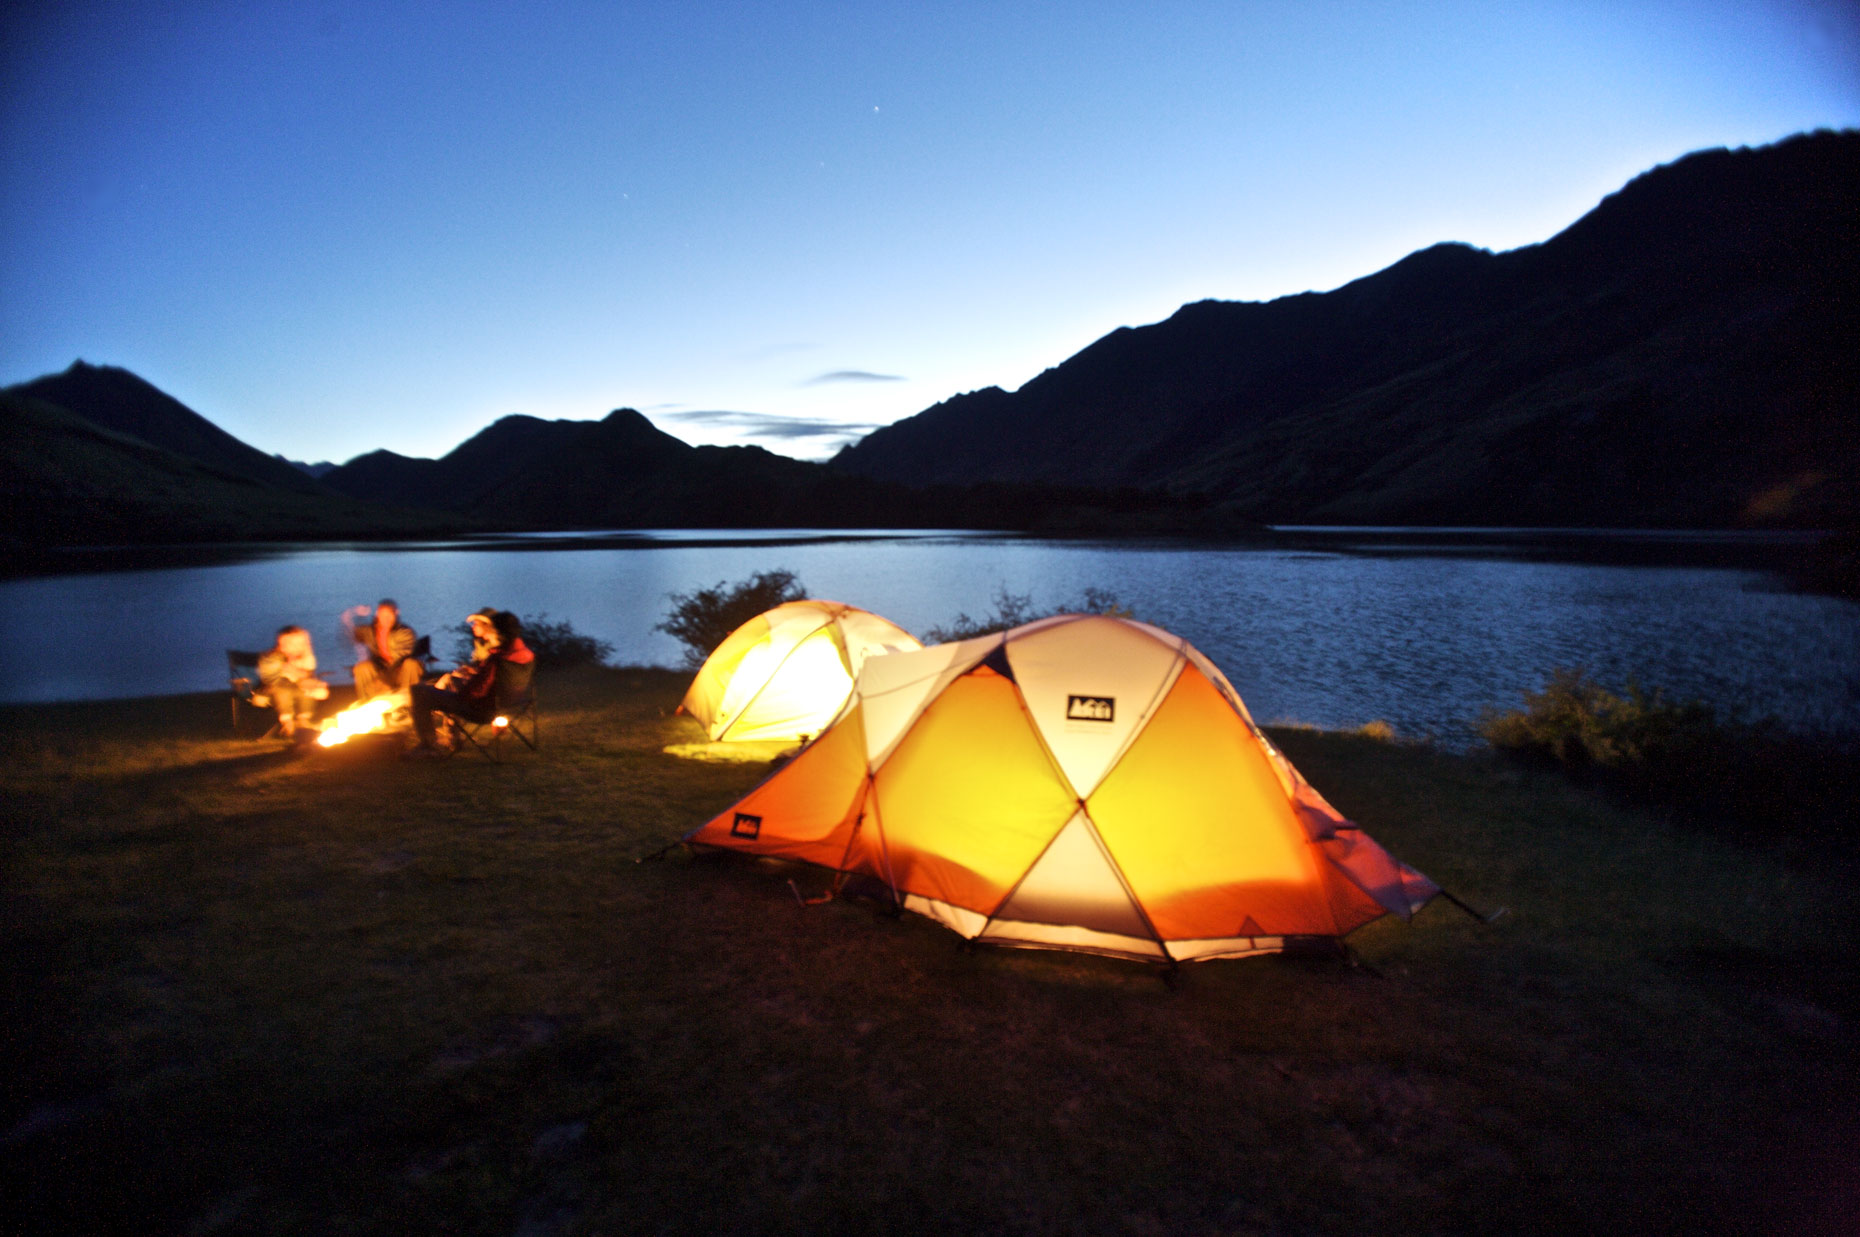 Camping under the Southern Cross New Zealand/Steve Mason Photography